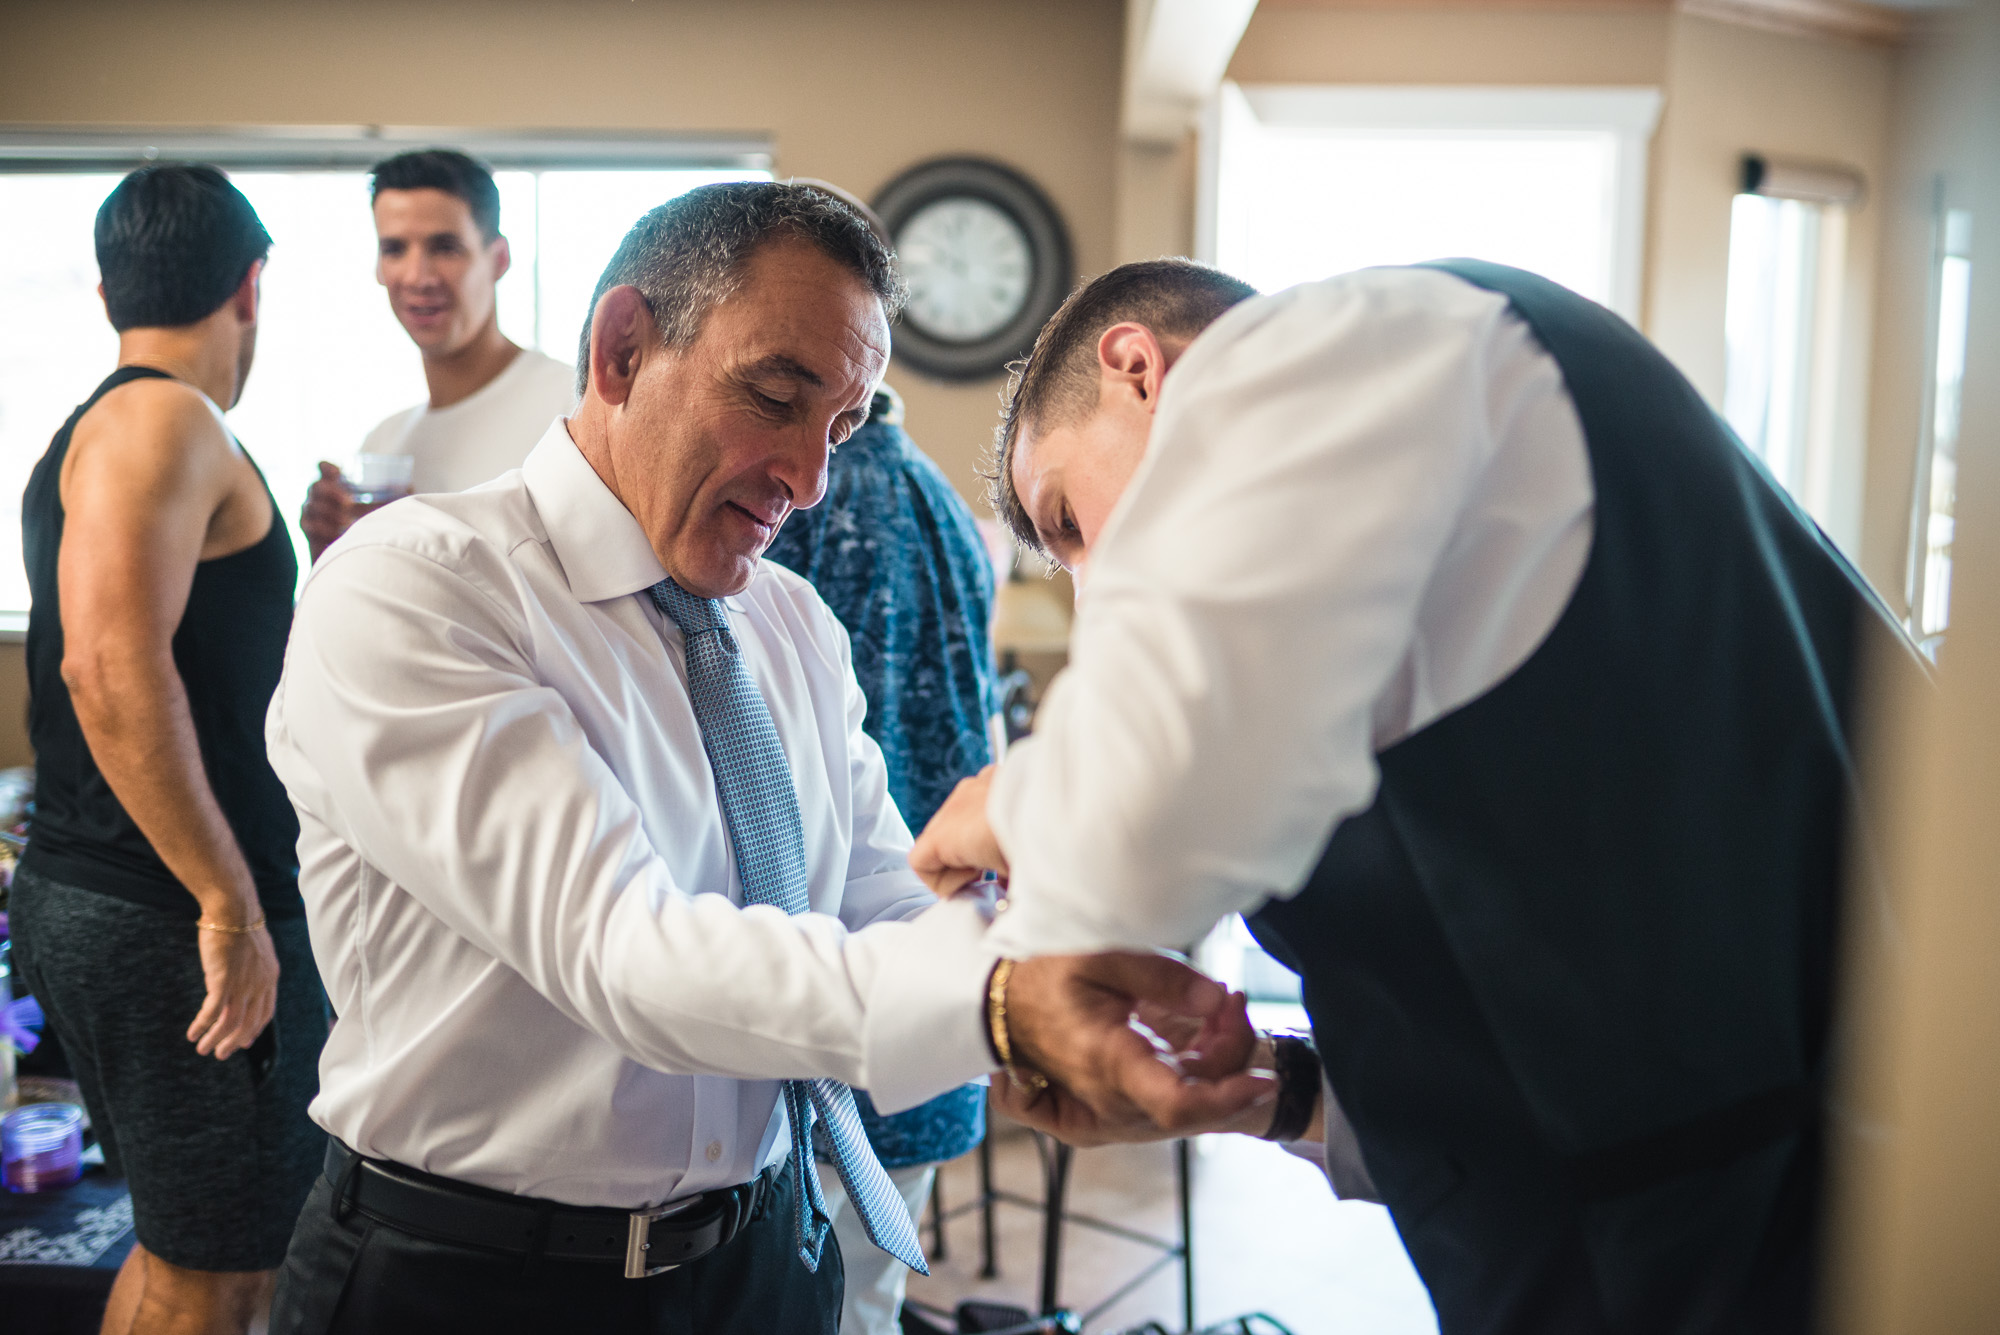 Father of the groom cufflinks prep